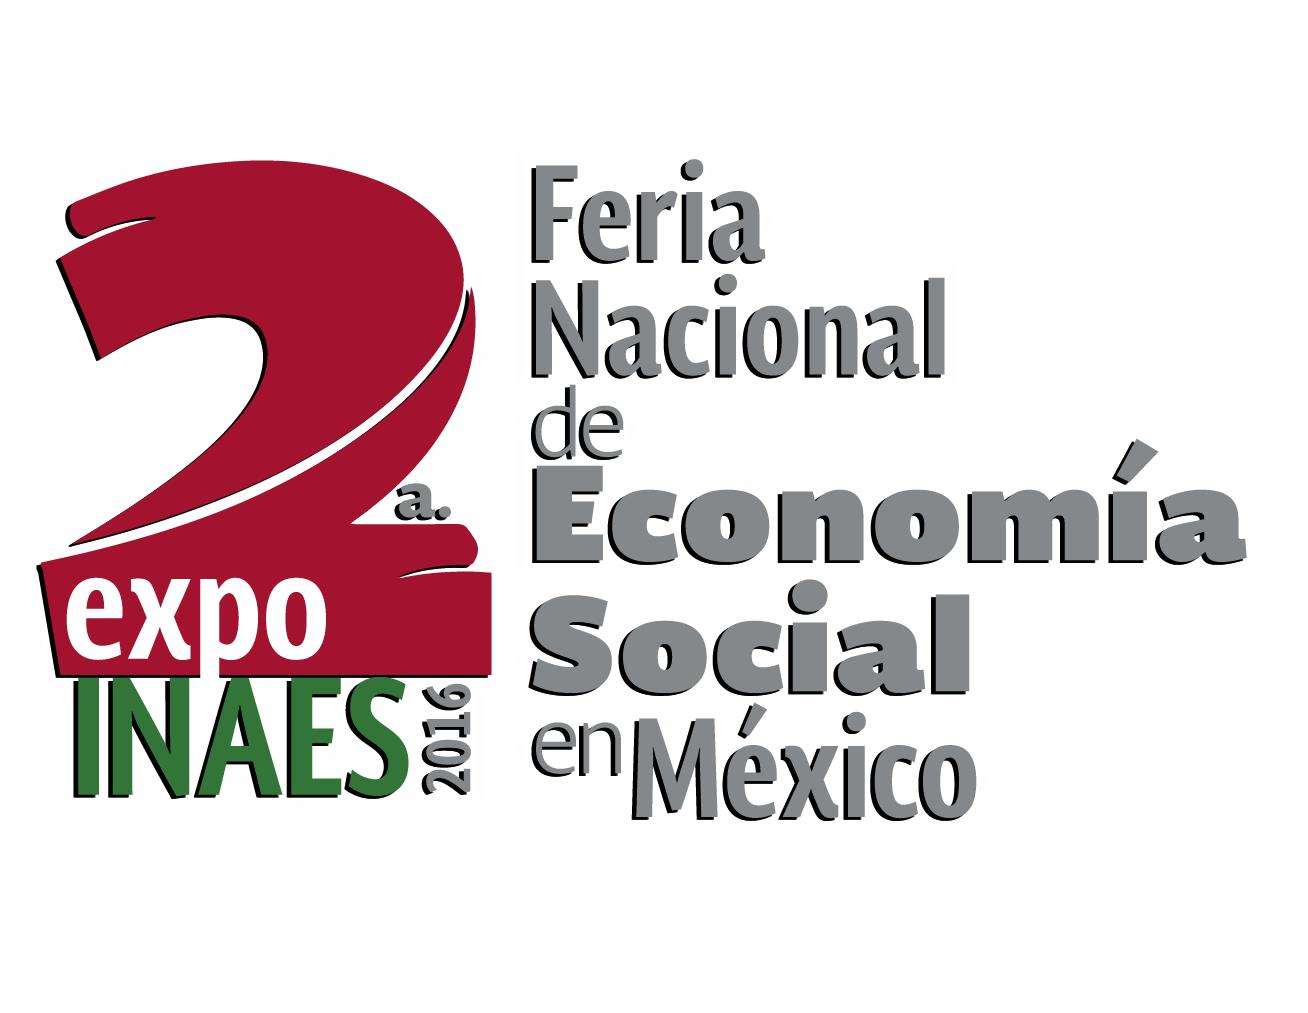 Expo inaes logo